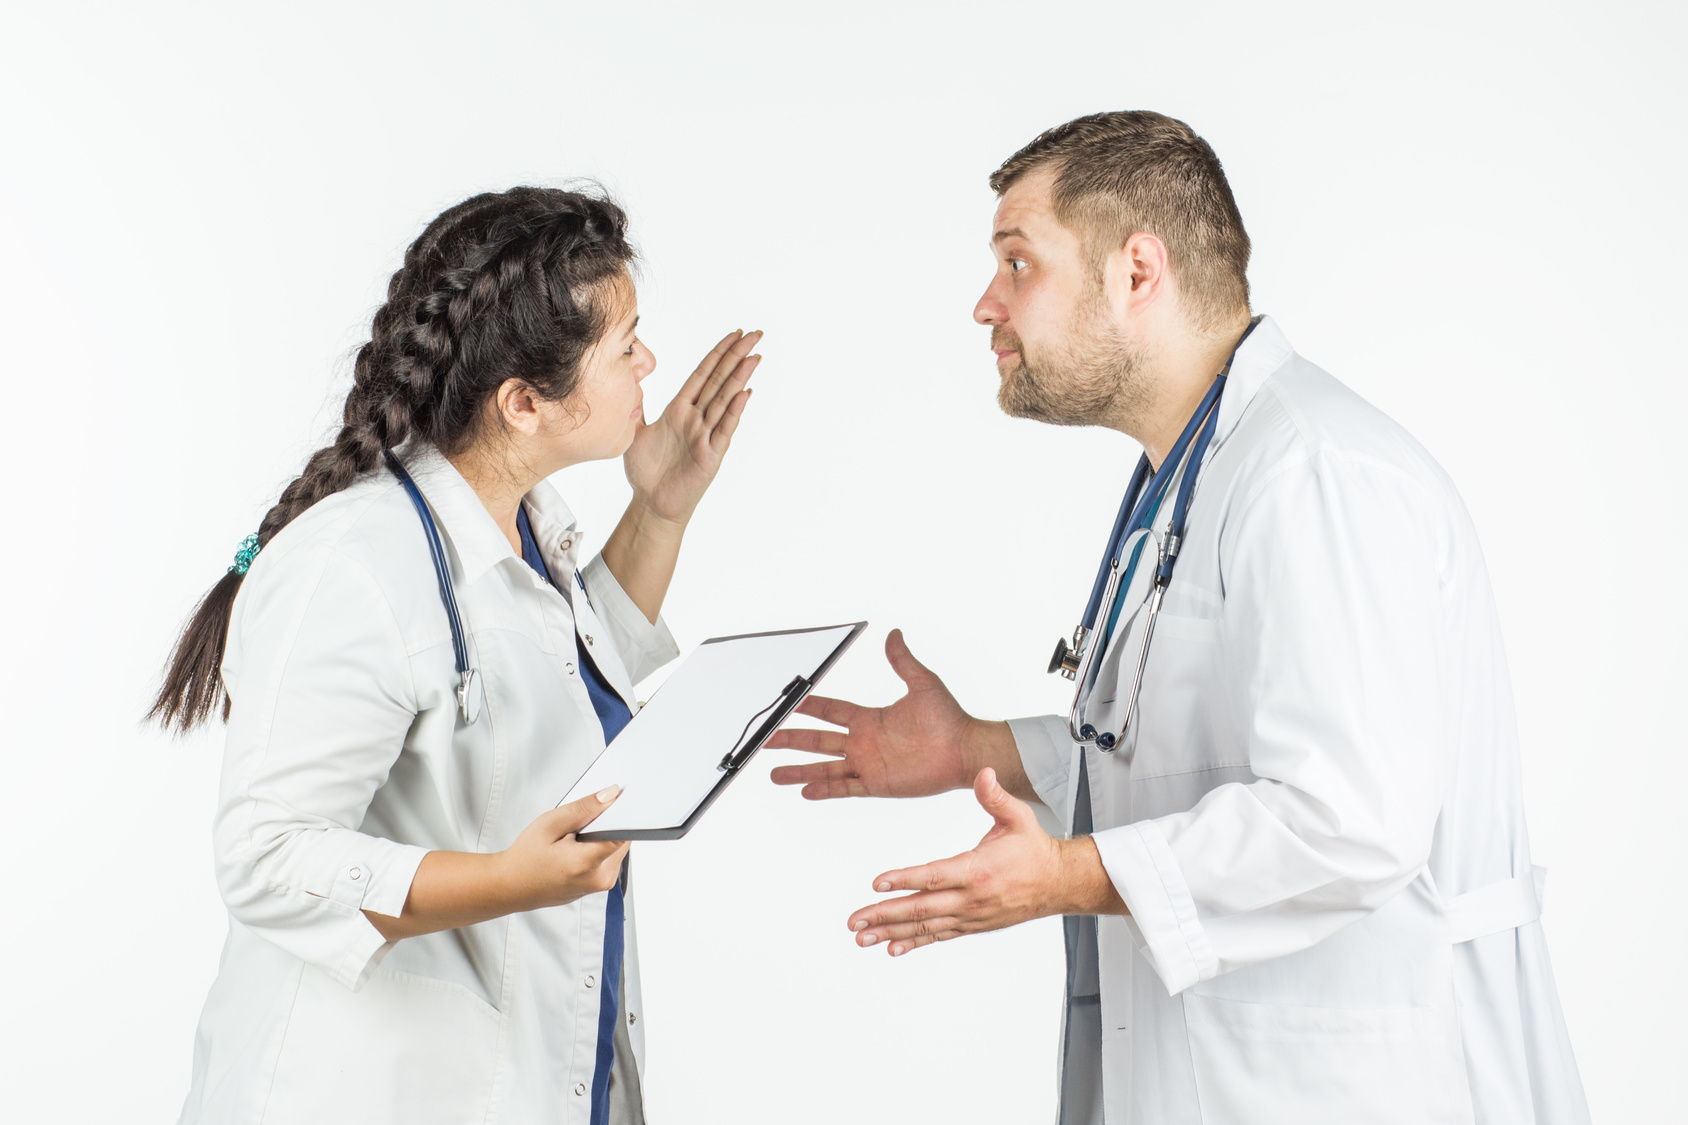 the doctor swears by the nurse. on a white background.